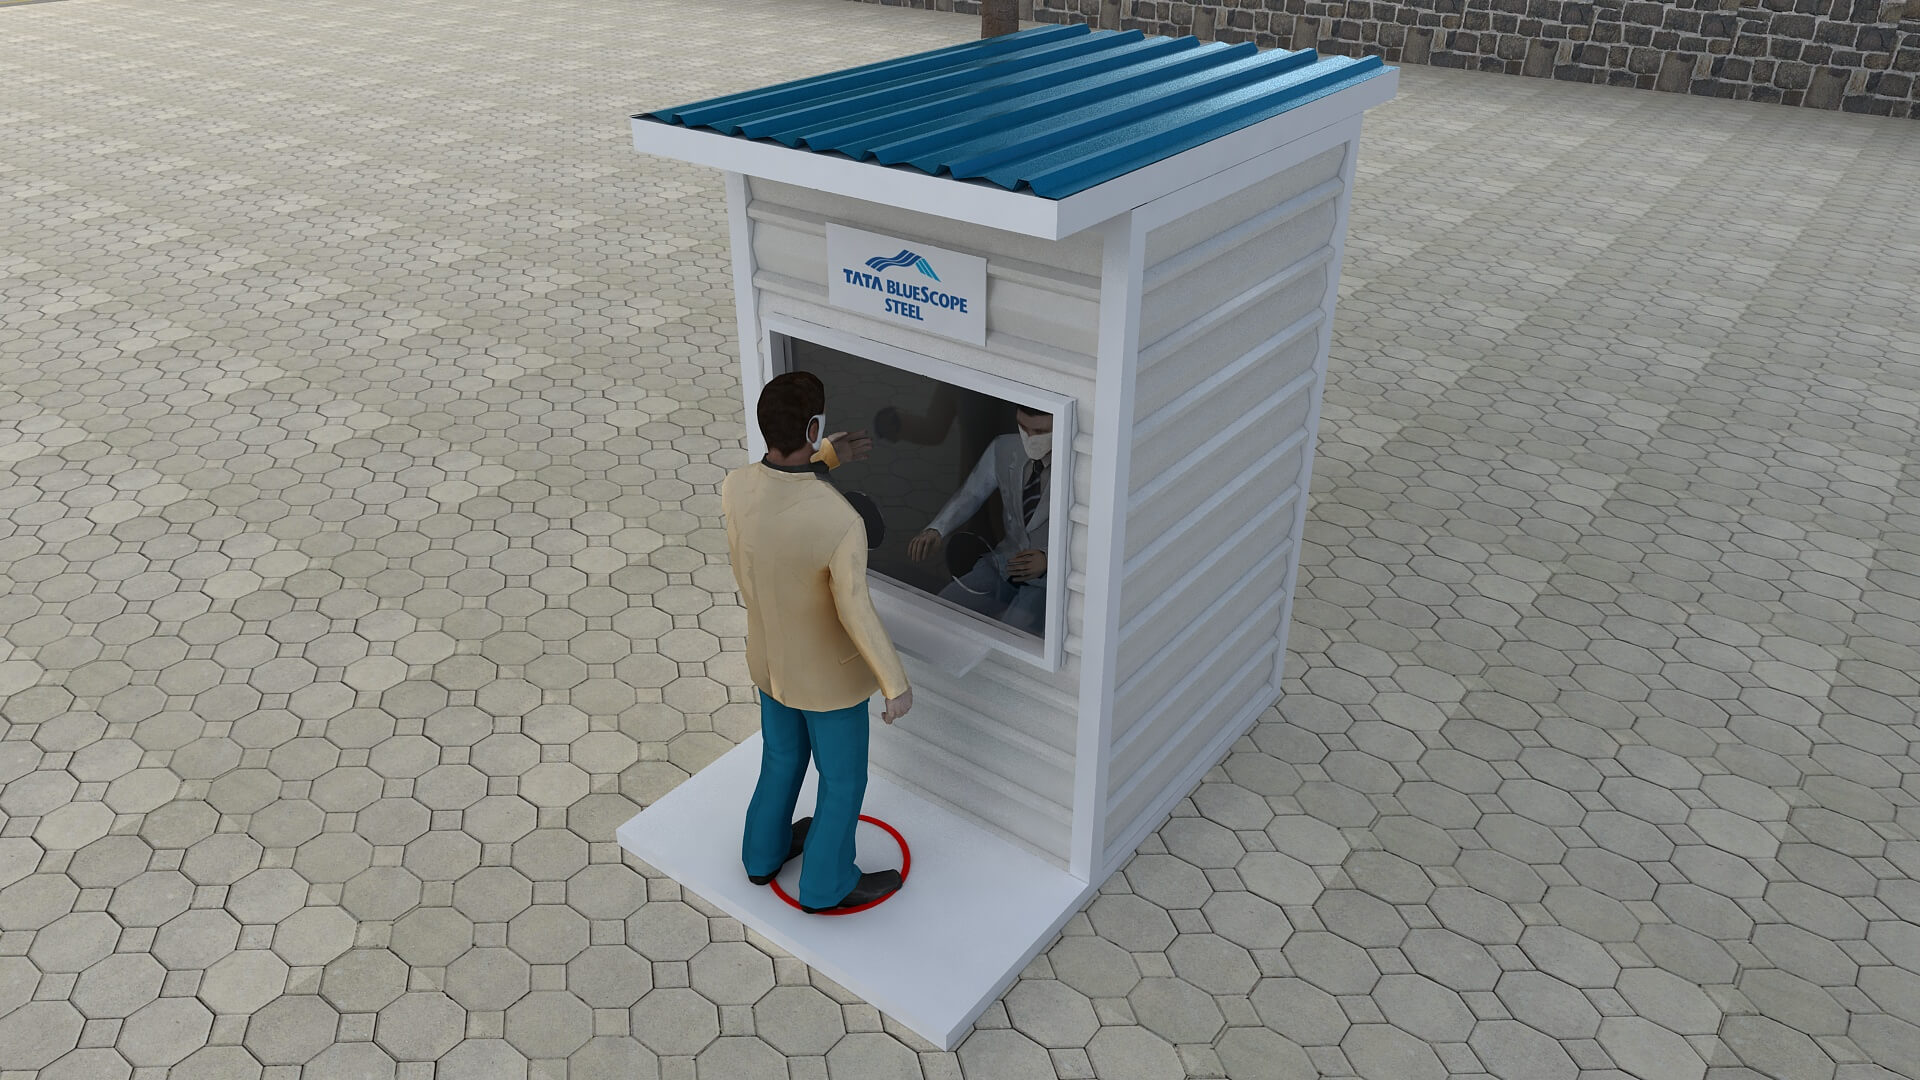 a testing & sample collection kiosk